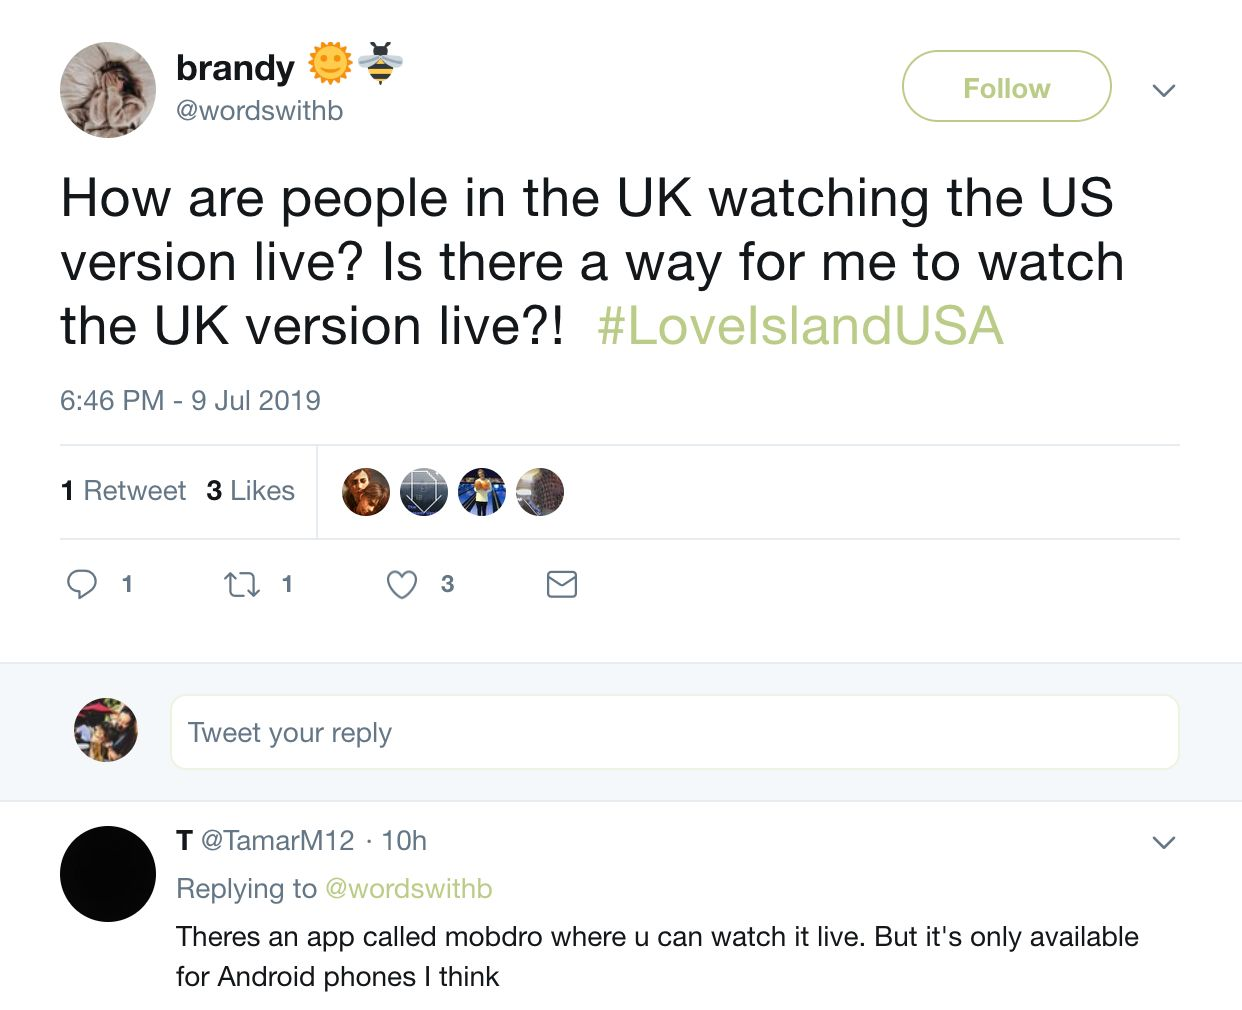 Image may contain: How to watch Love Island USA, in UK, Love Island USA, Love Island, America, CBS, stream, online, free, subscription, watch, live, tweet, reddit, thread, app, Page, Text Message, Text